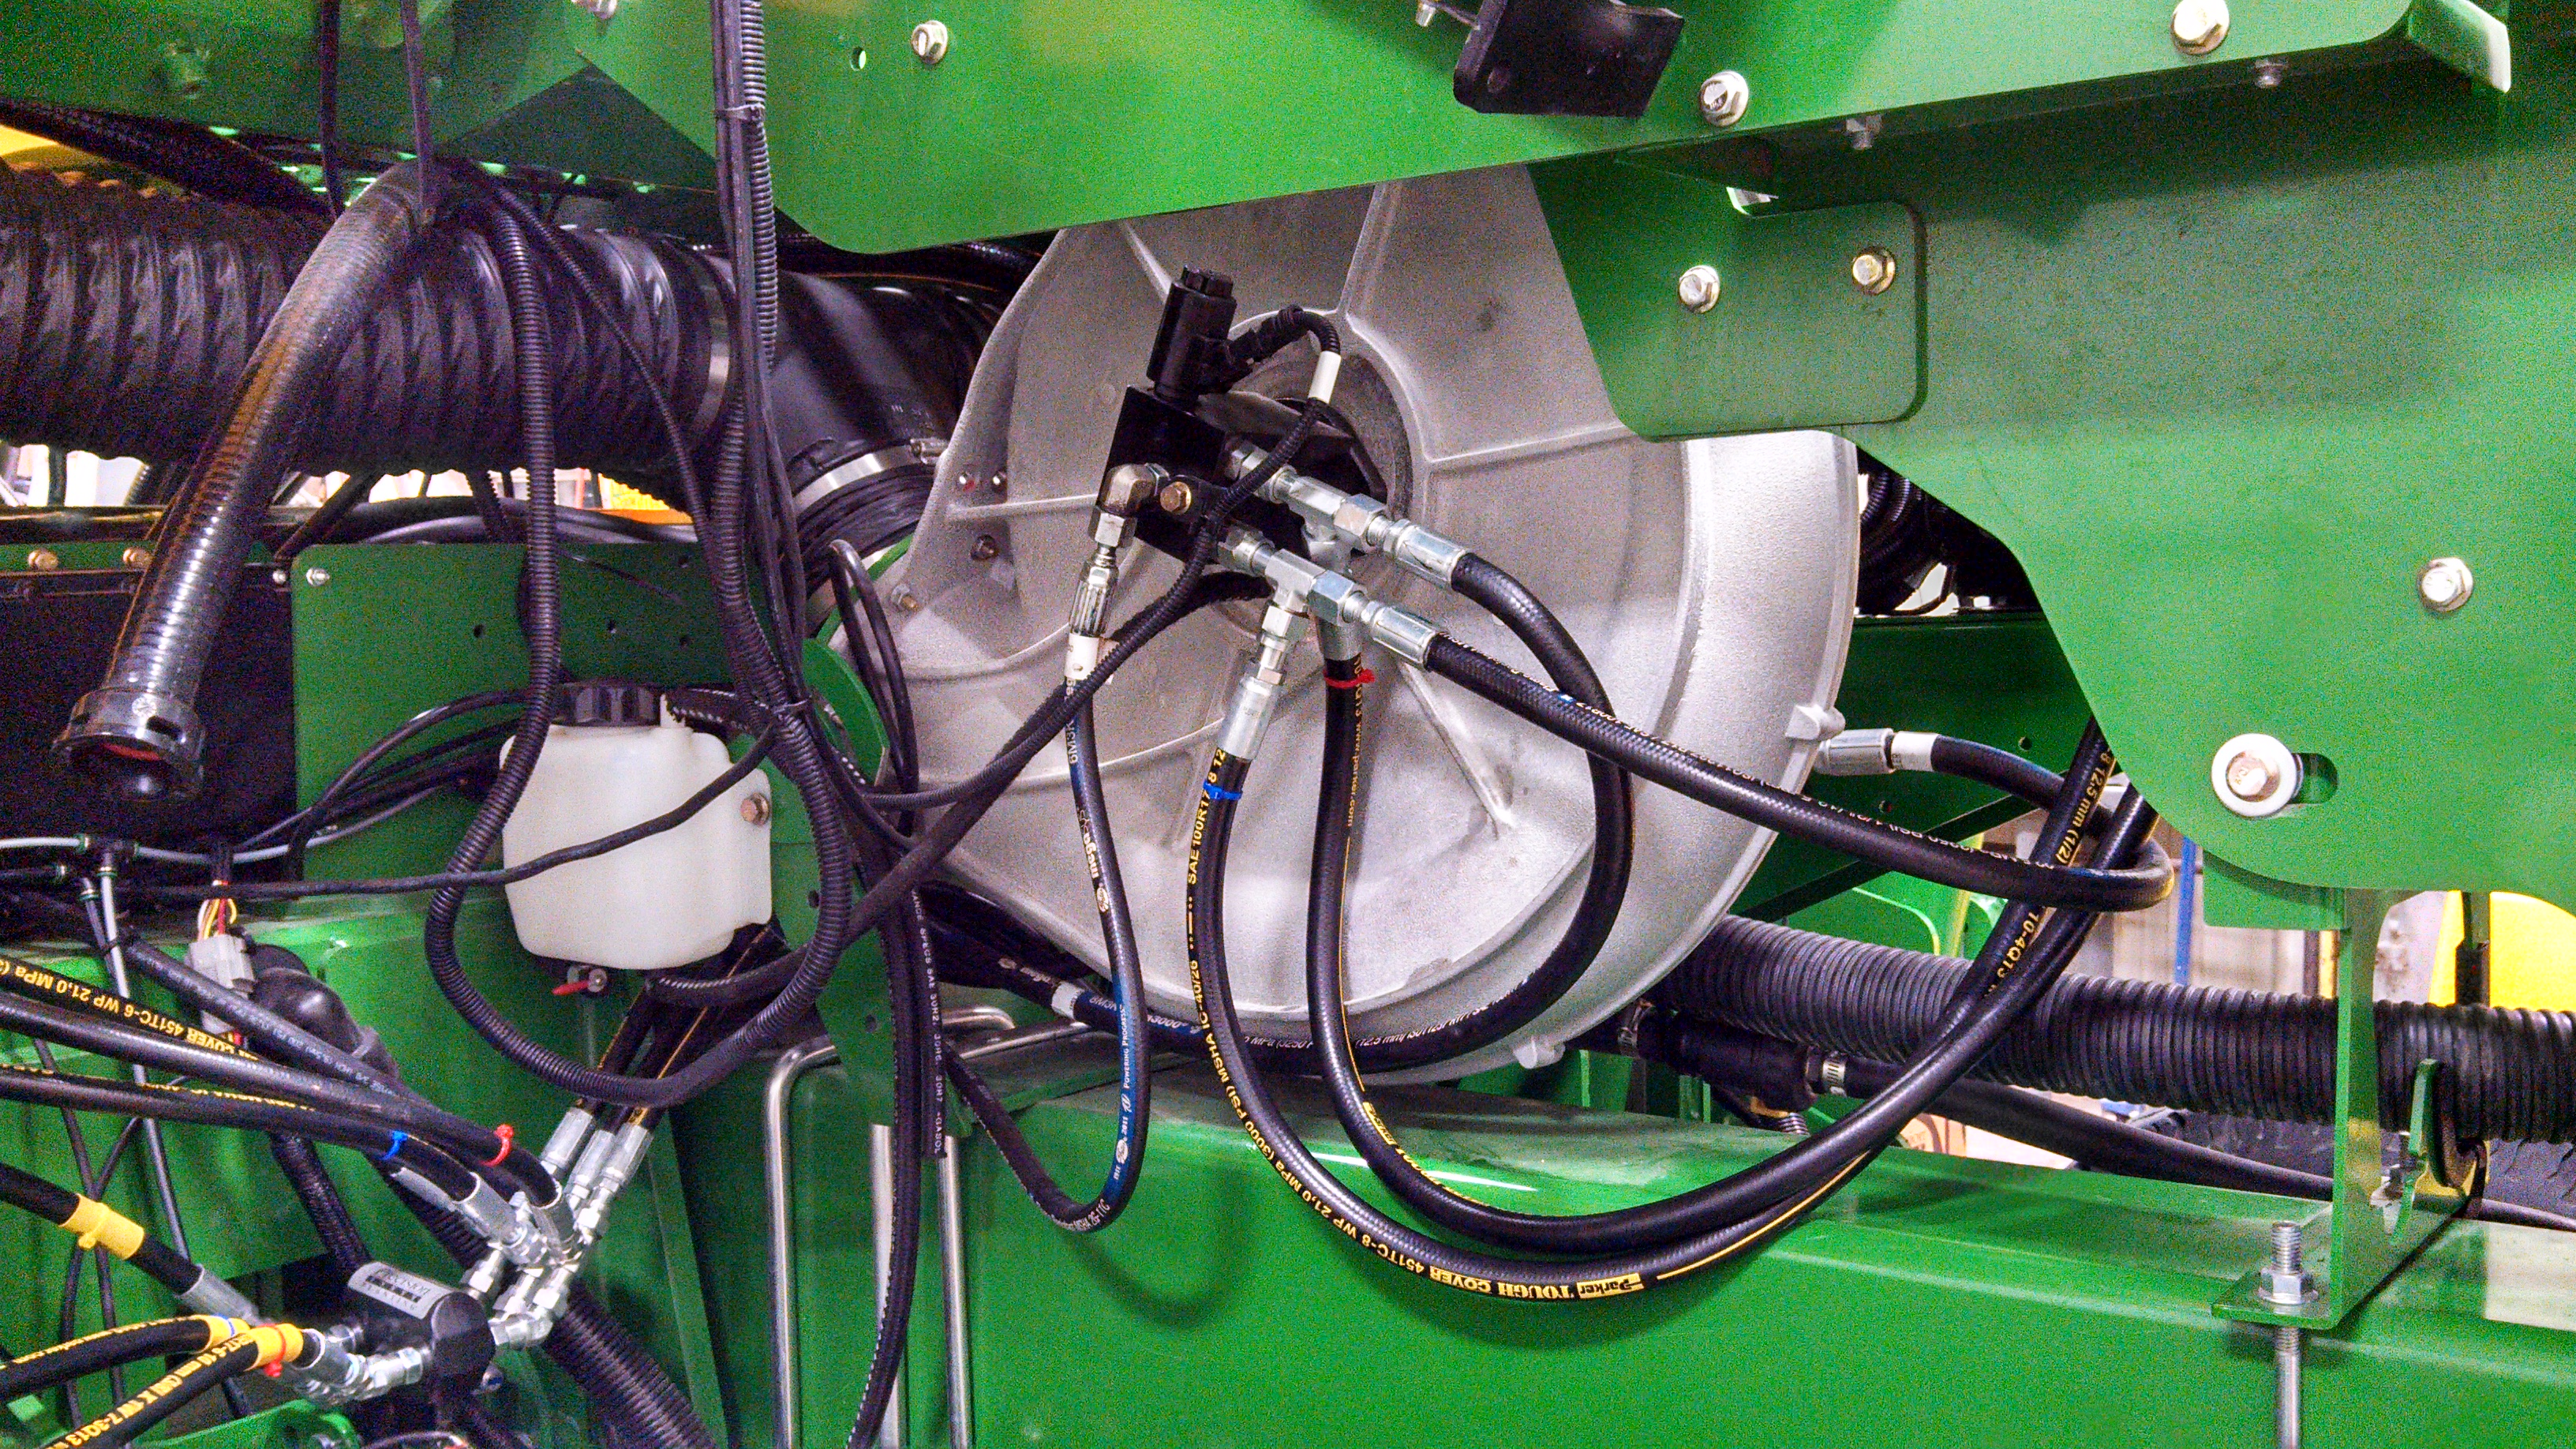 GX5 Integrated into the planter blower motor